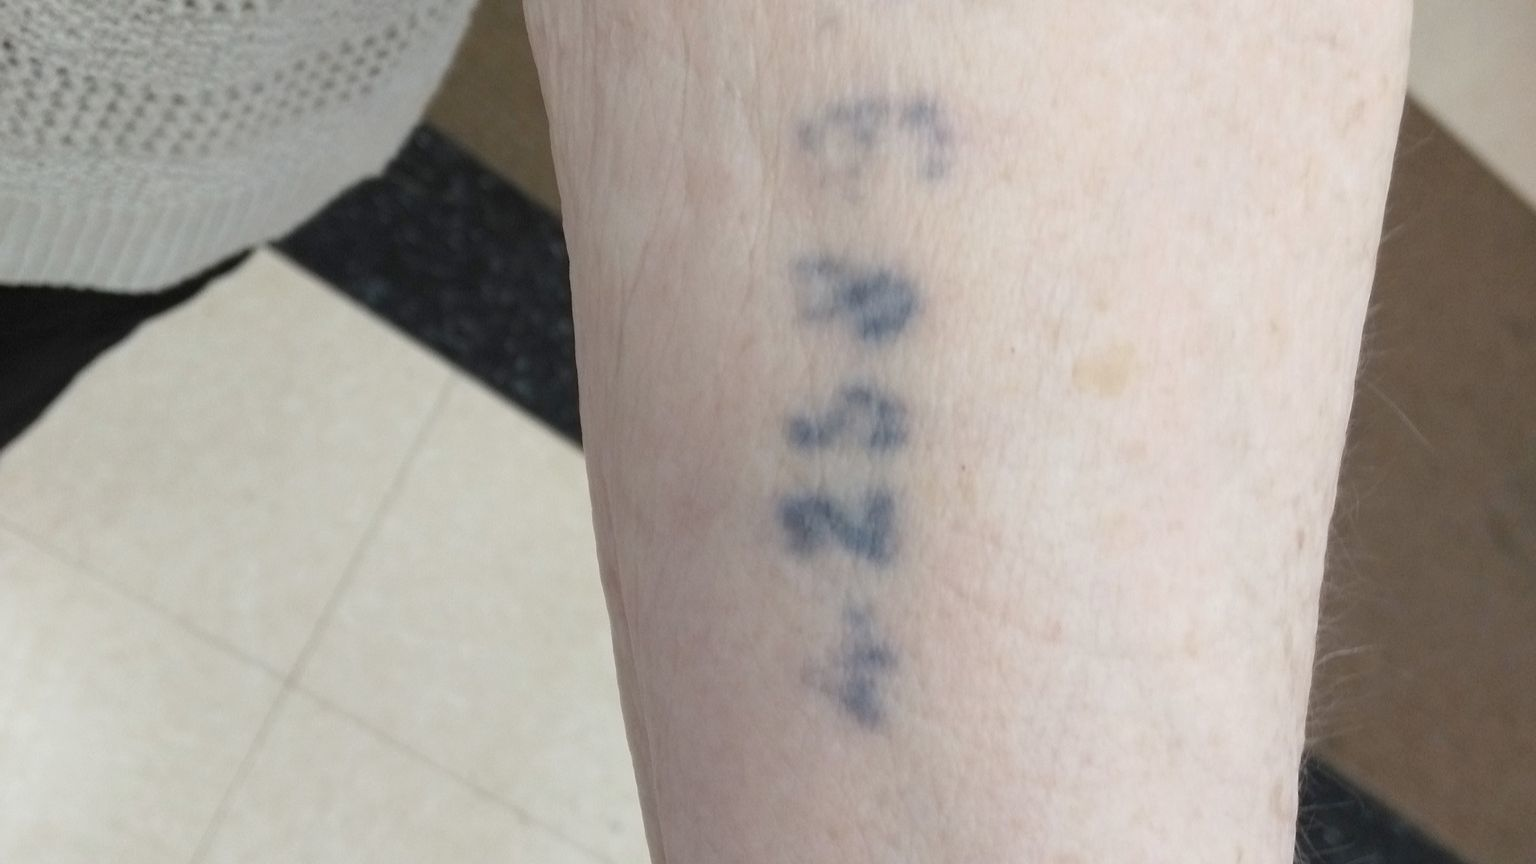 Rose Schindler displays a tattoo on her arm that identified her as A25893 when she was in the Auschwitz concentration camp during World War II.